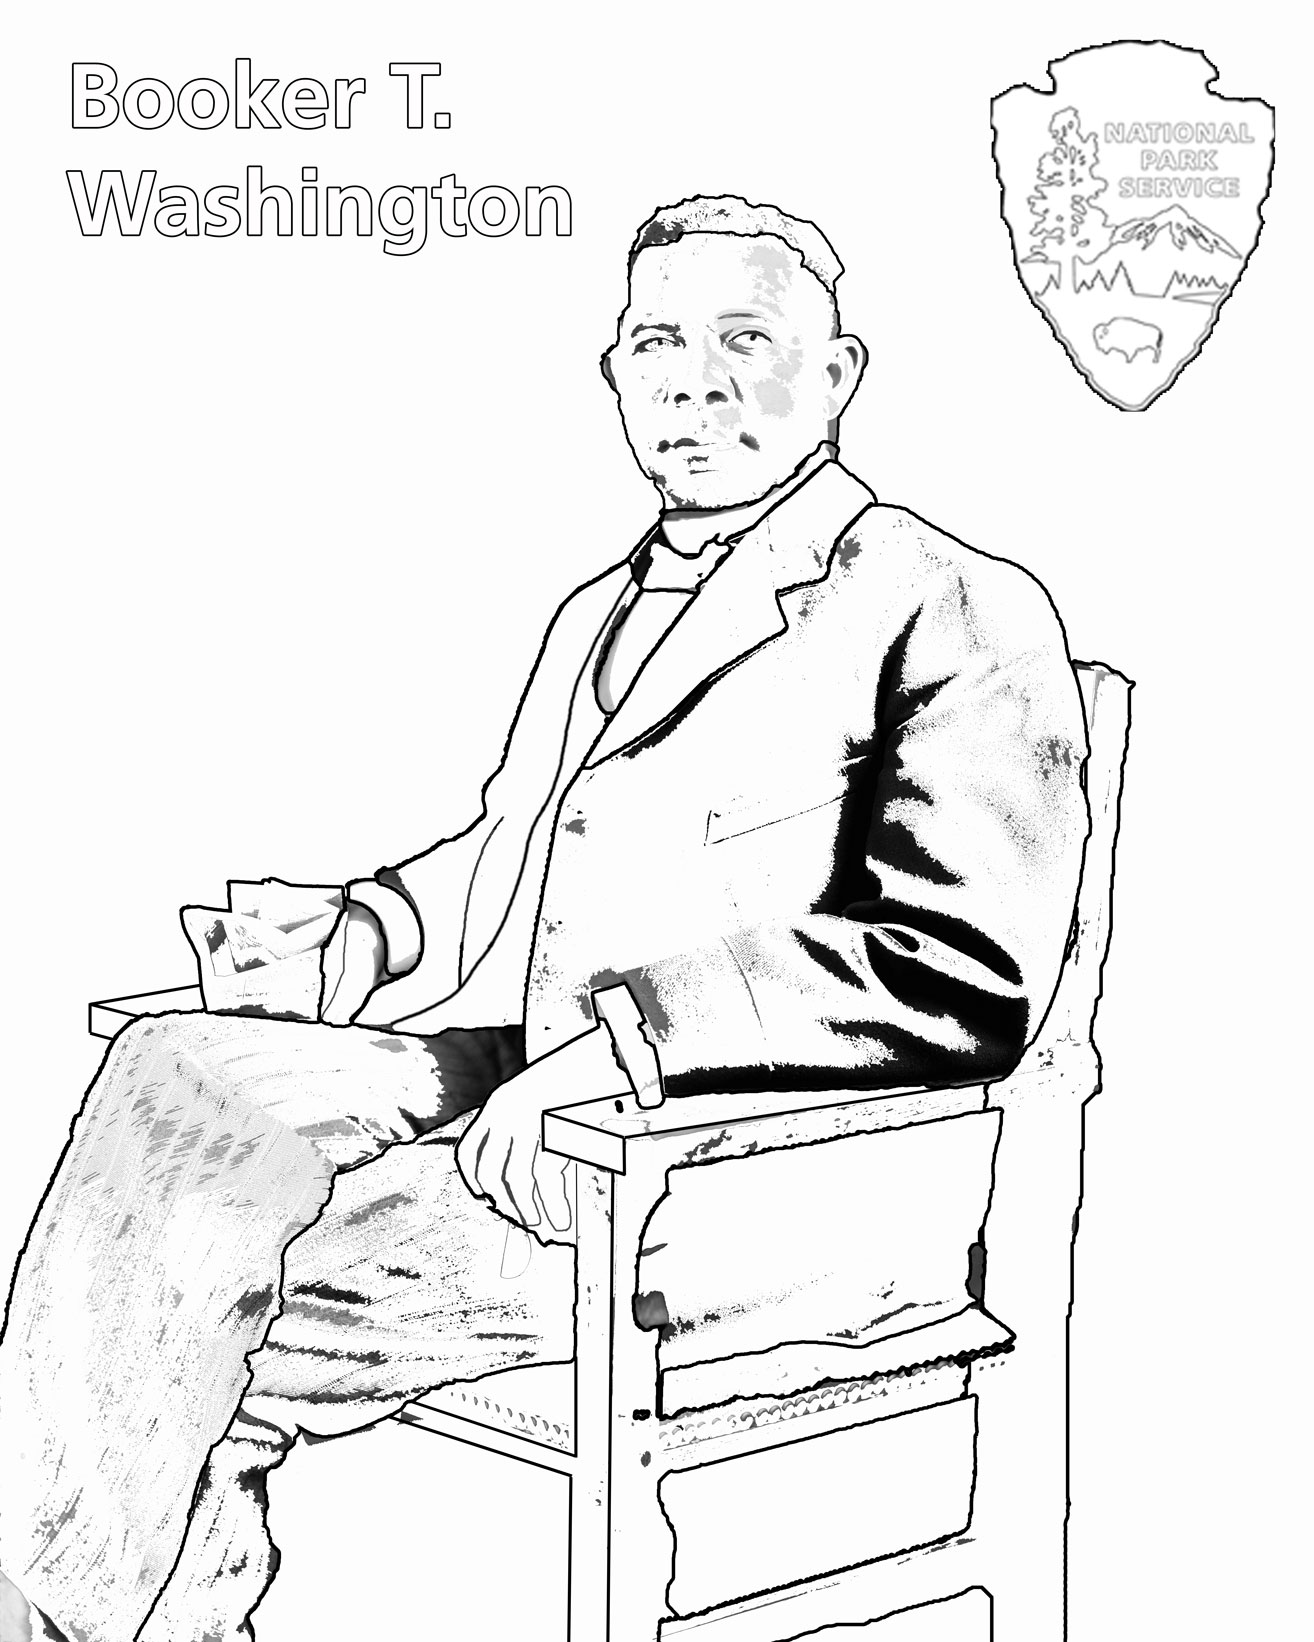 The Debate Between W.E.B. Du Bois and Booker T. Washington